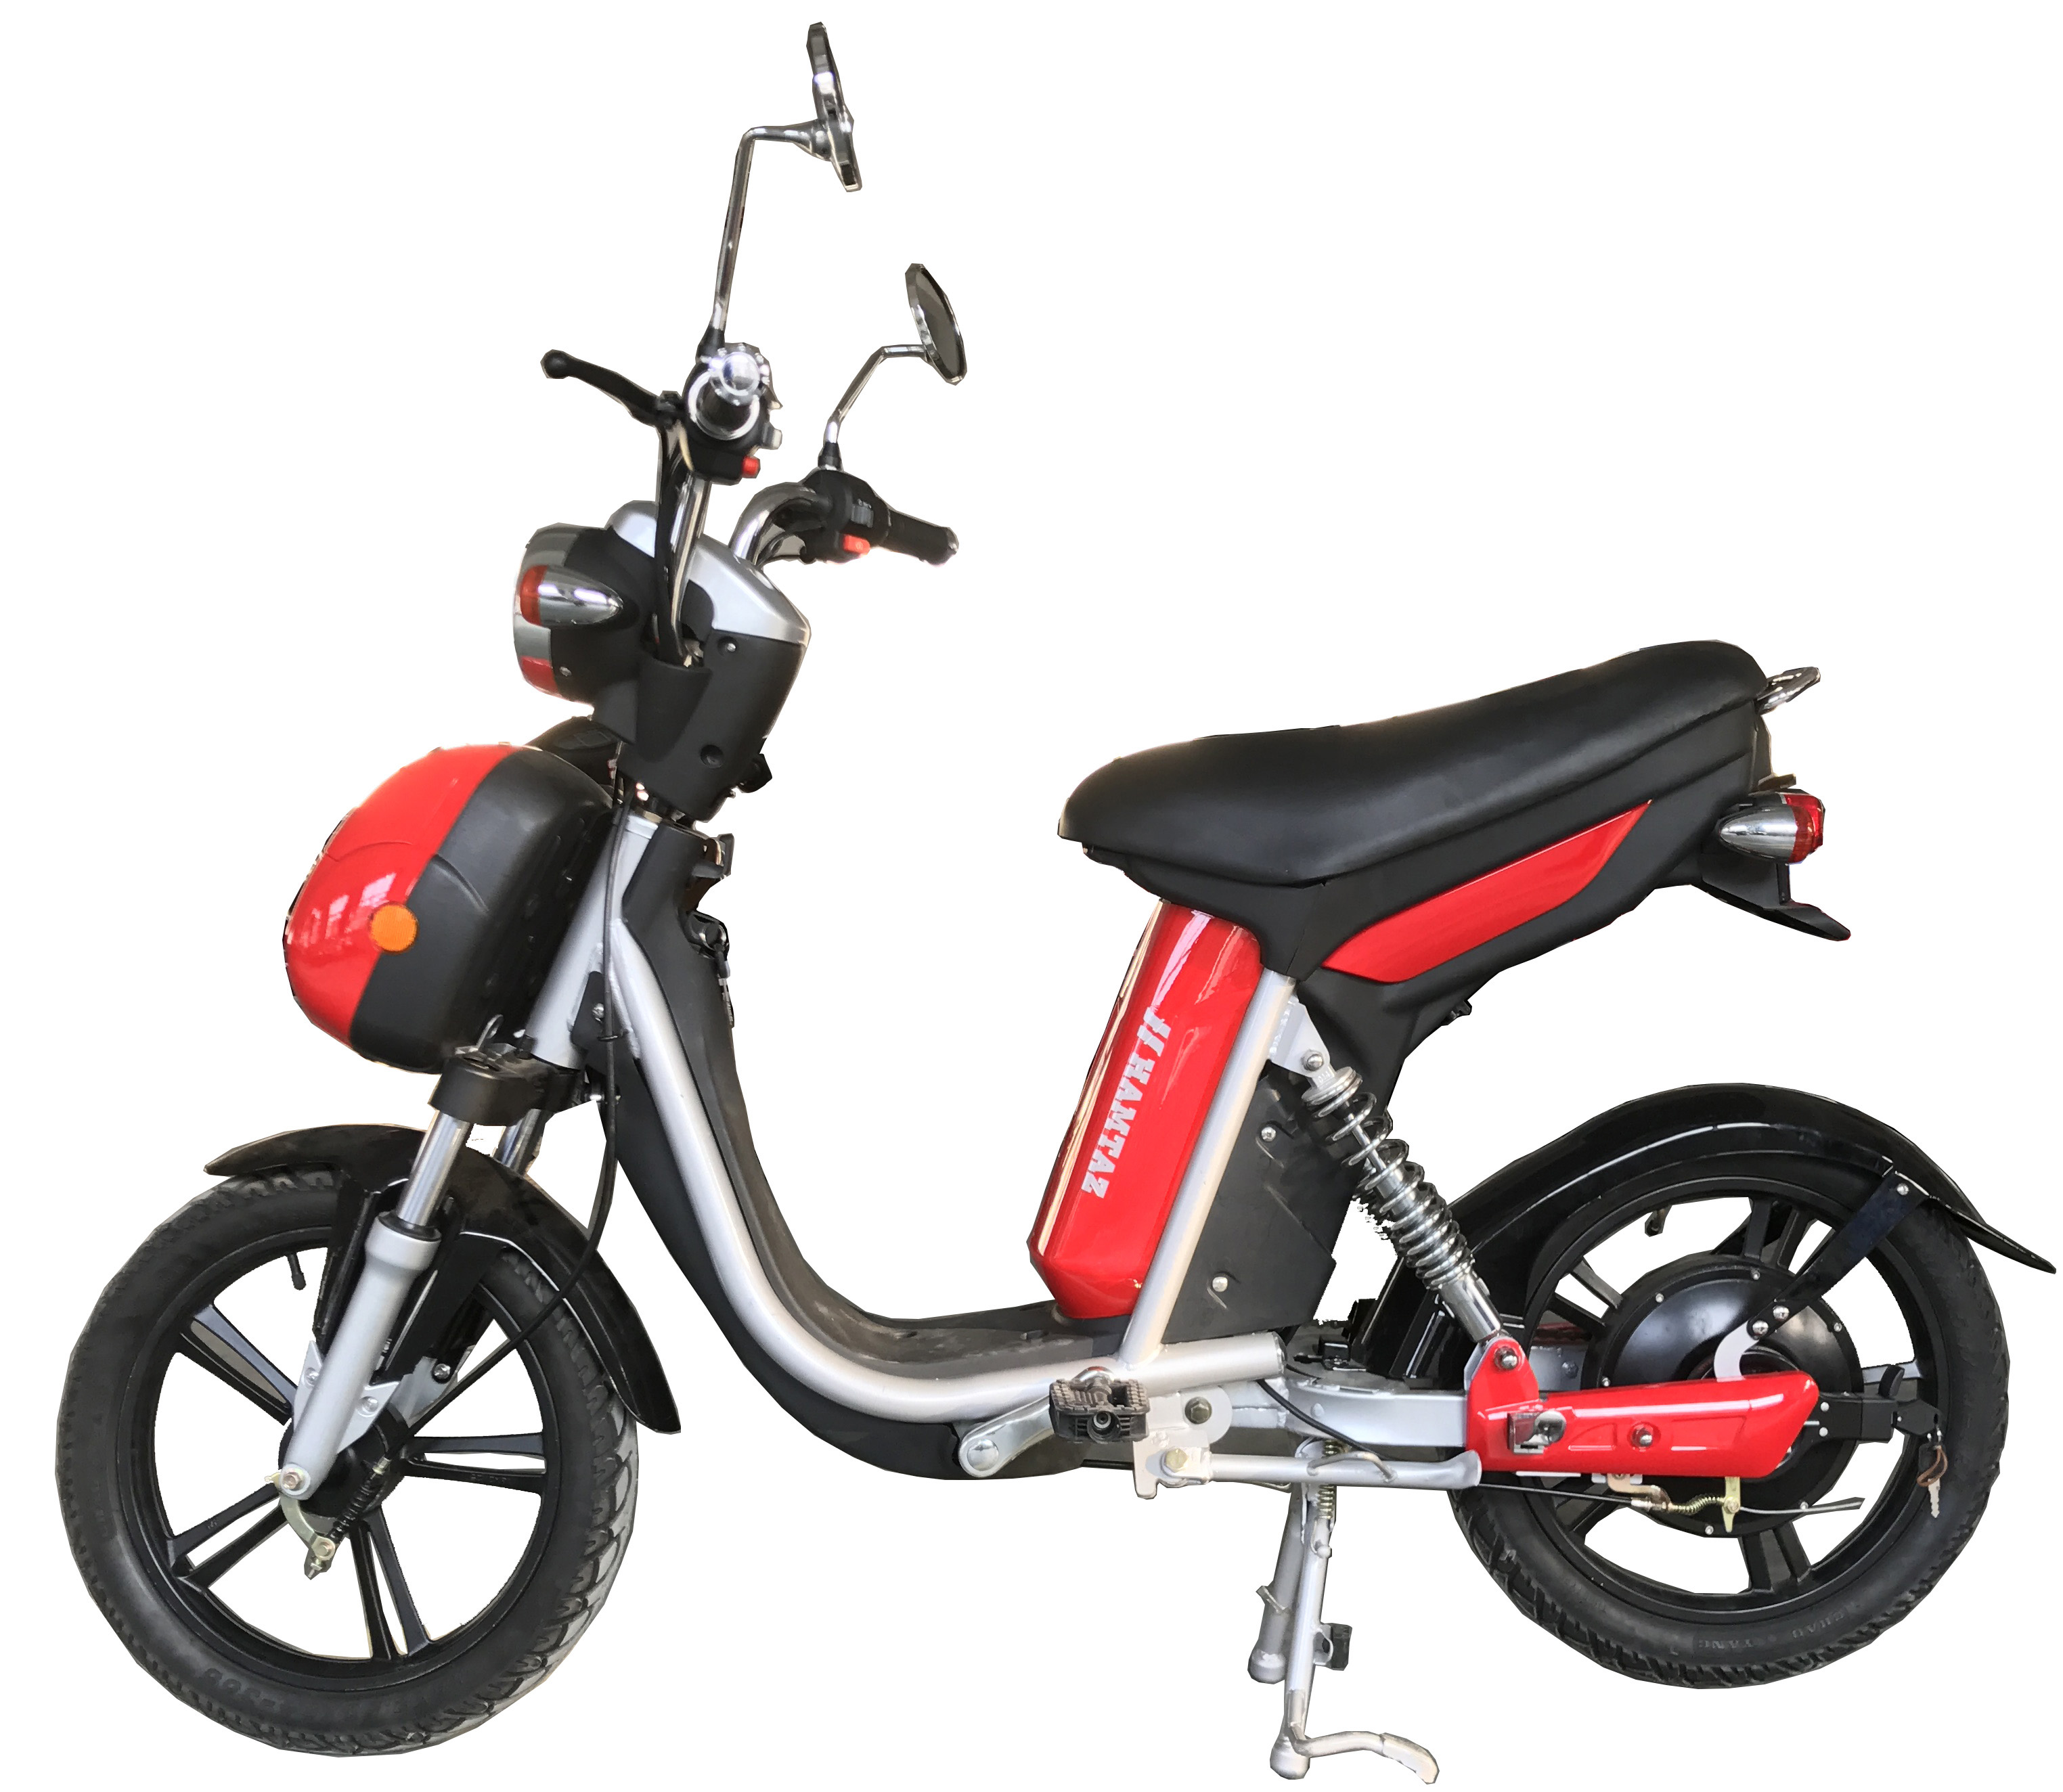 Pedal assiant electric bike